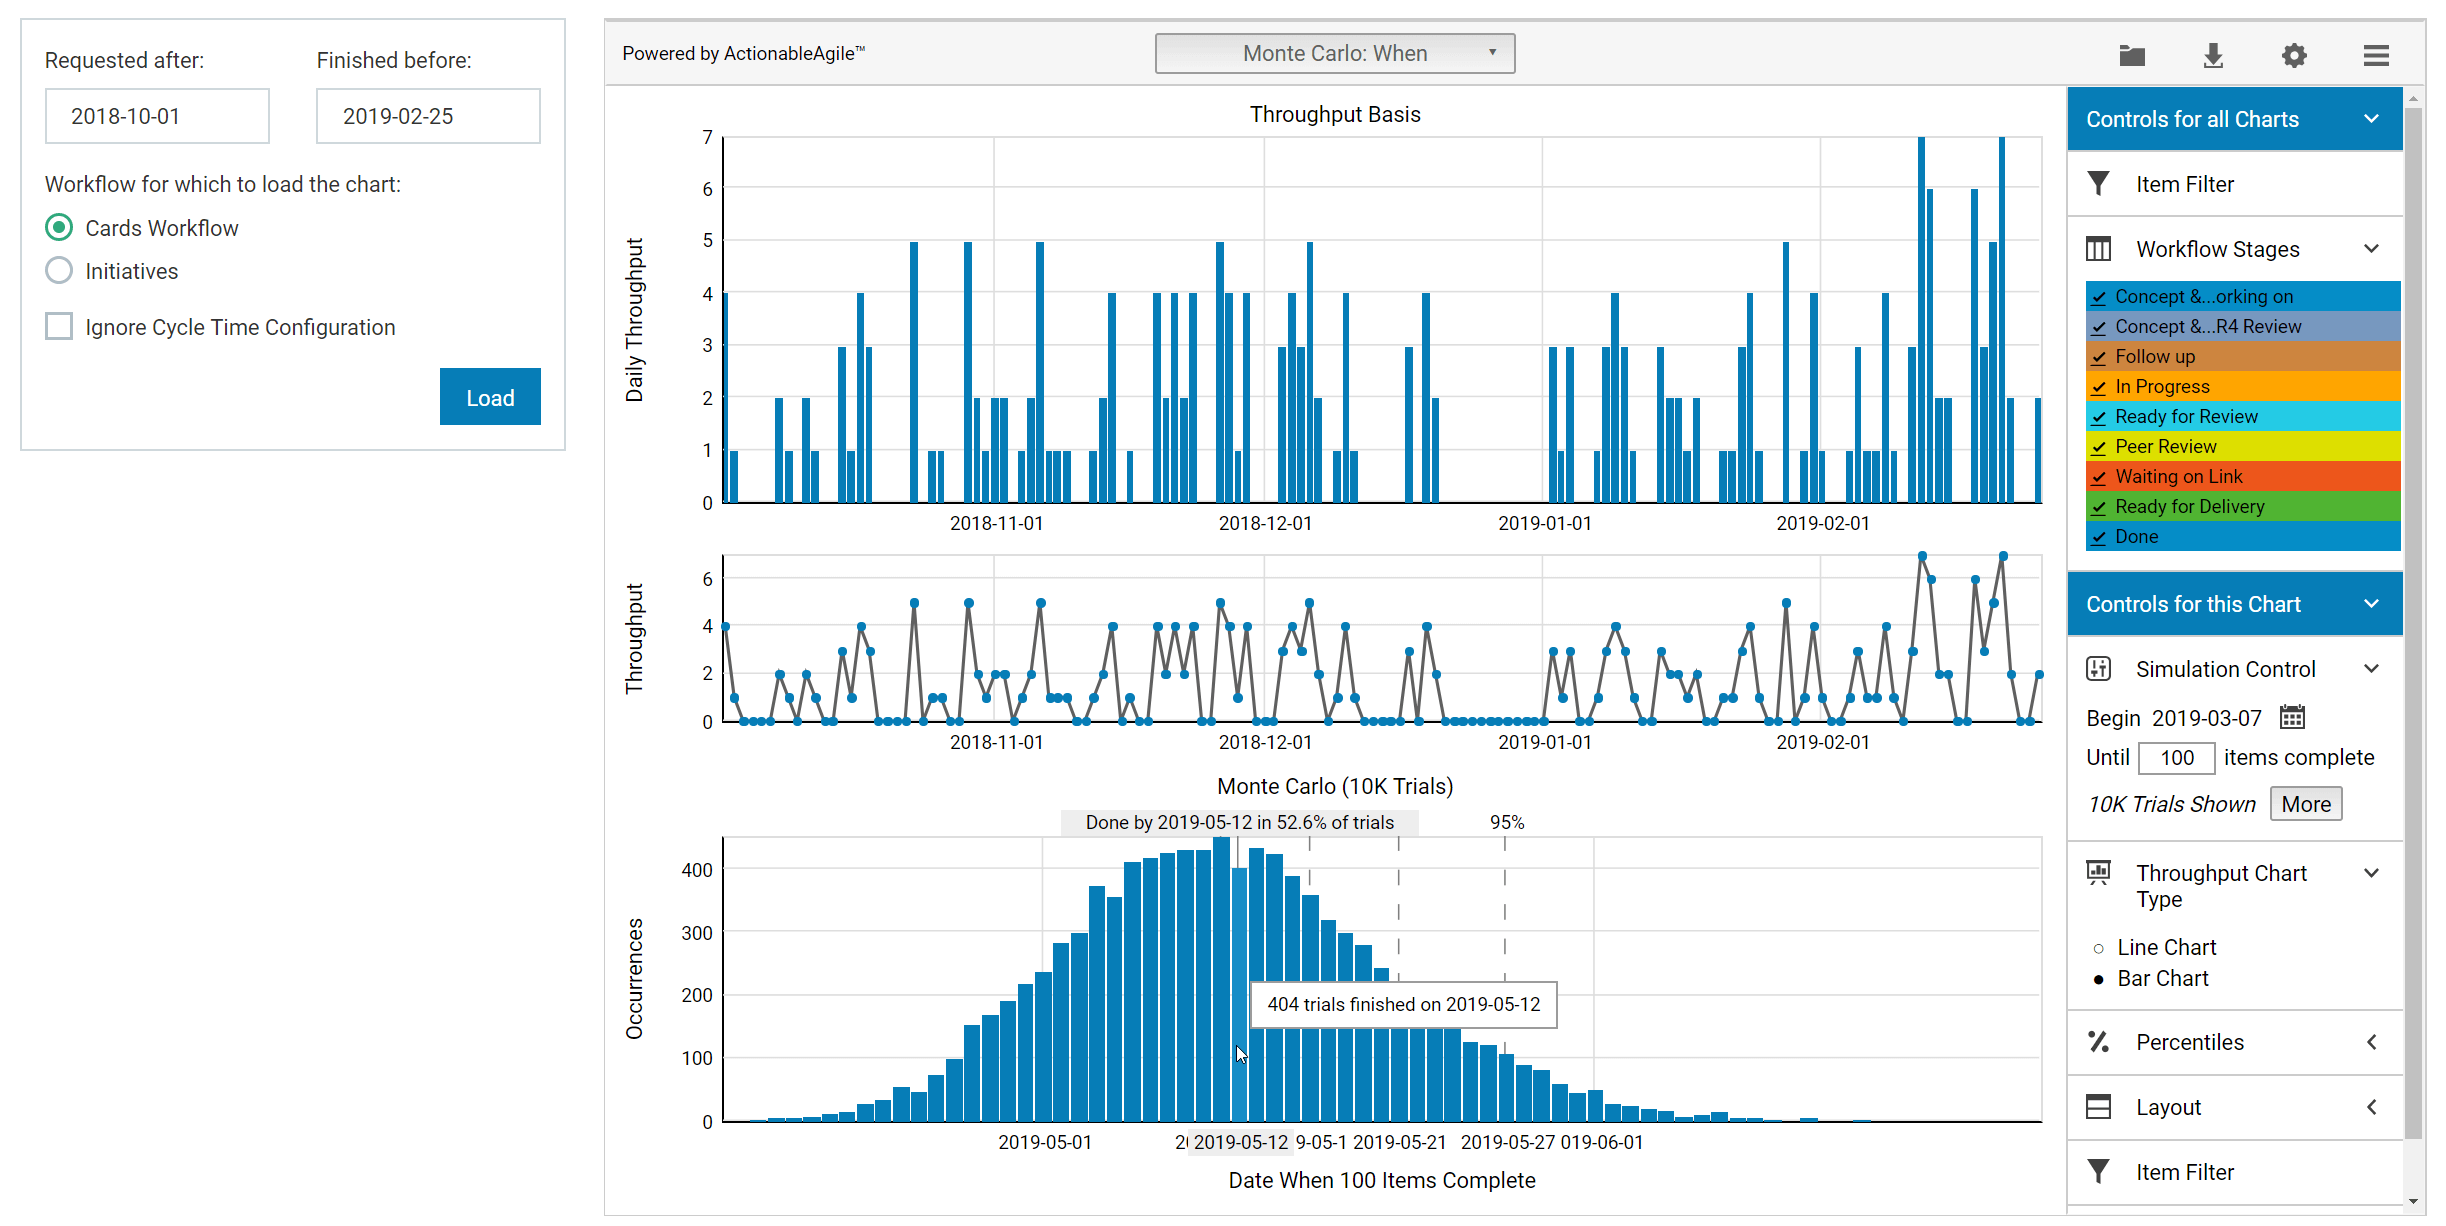 Monte Carlo simulations in Kanbanize